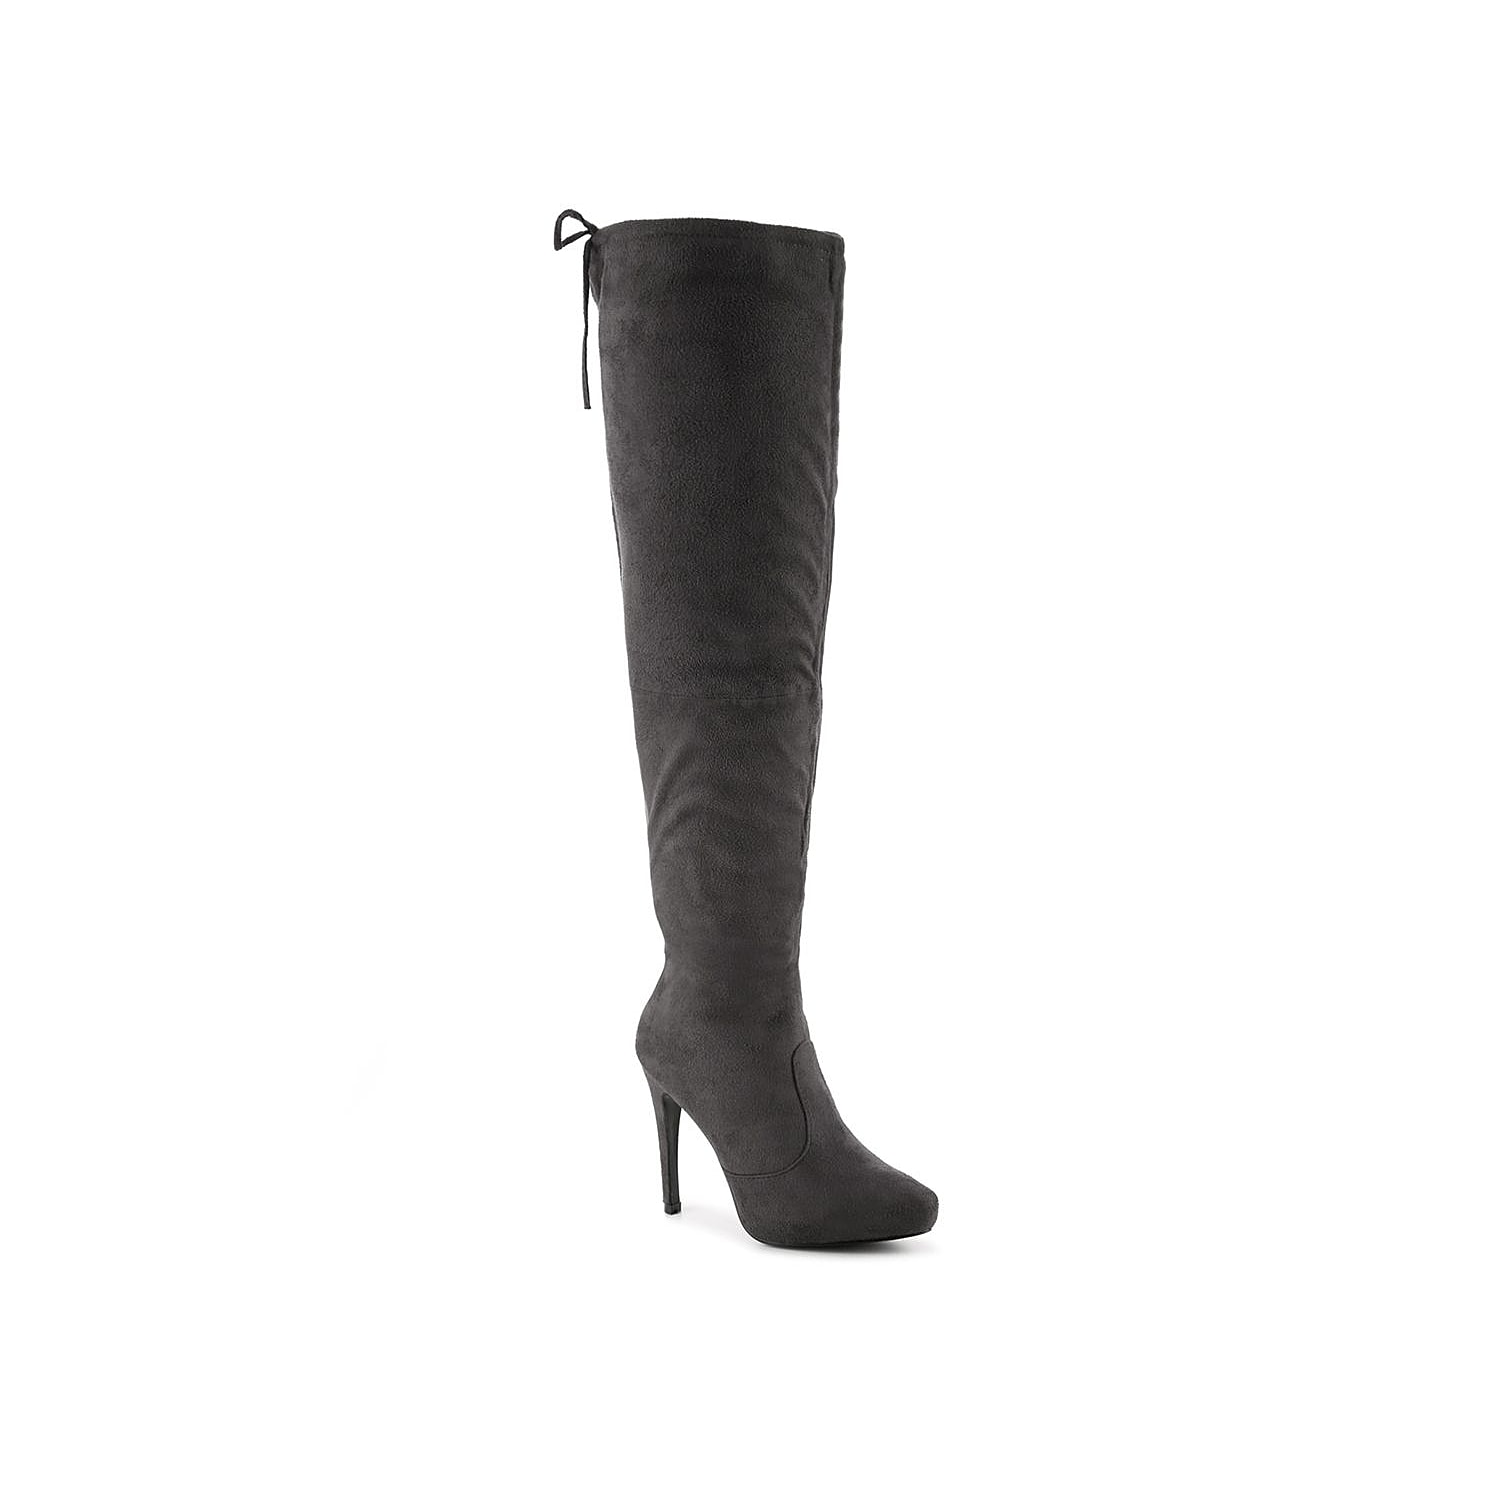 Strut your sophisticated style in the Magic over the knee boots from Journee Collection. With the chic platform and knee high silhouette, these high heel boots are sure to make a powerful statement!Click here for Boot Measuring Guide.